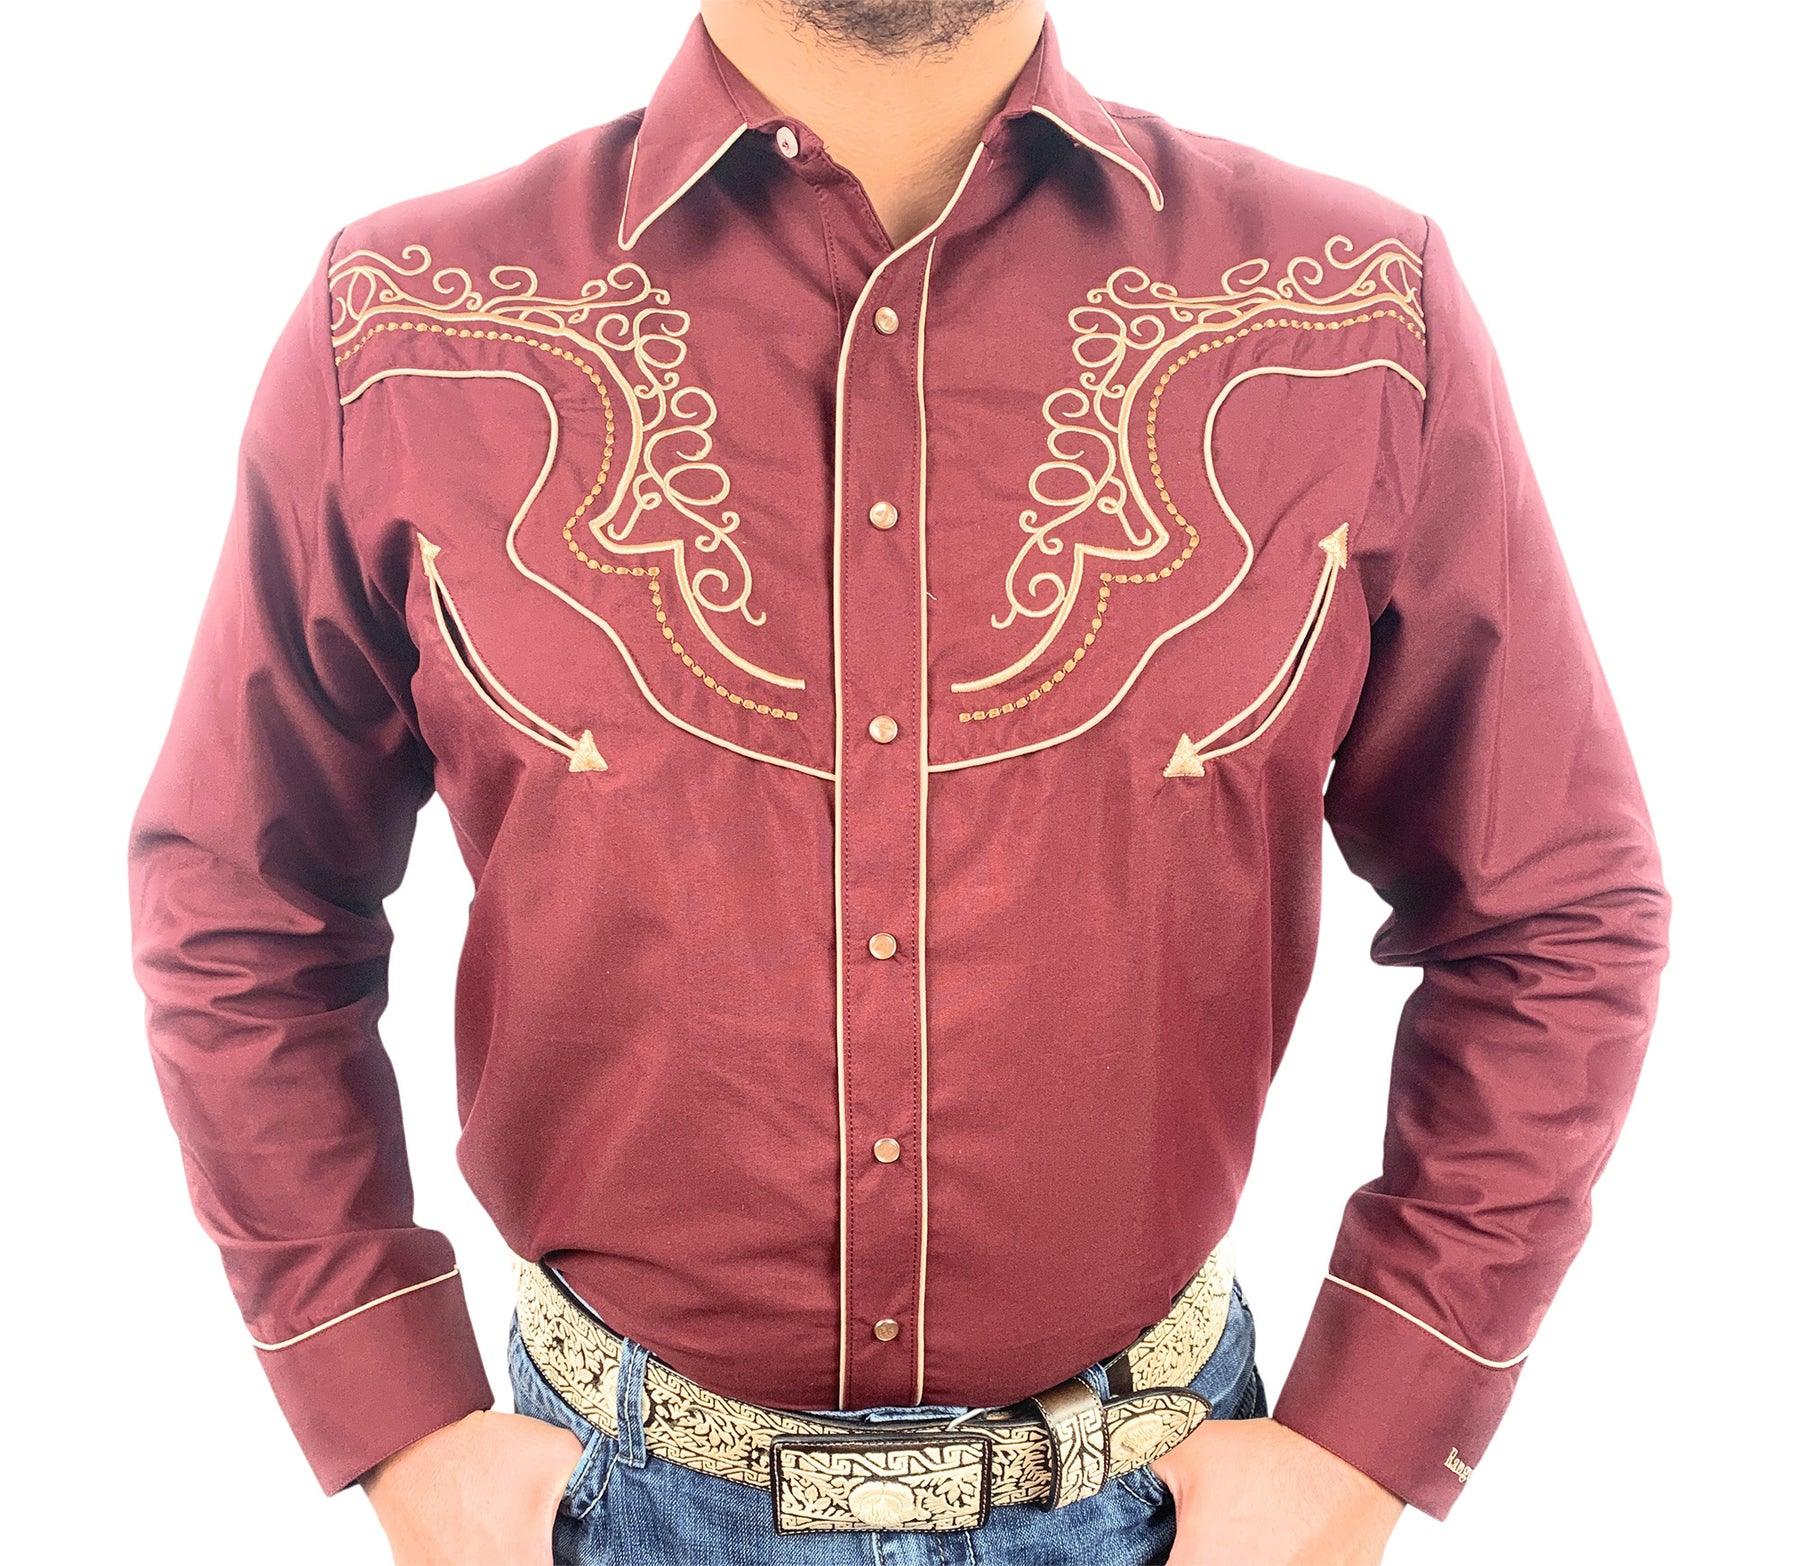 Ranger's Men's Western Shirt With Luxury Embroidery In Burgundy - 012CA01